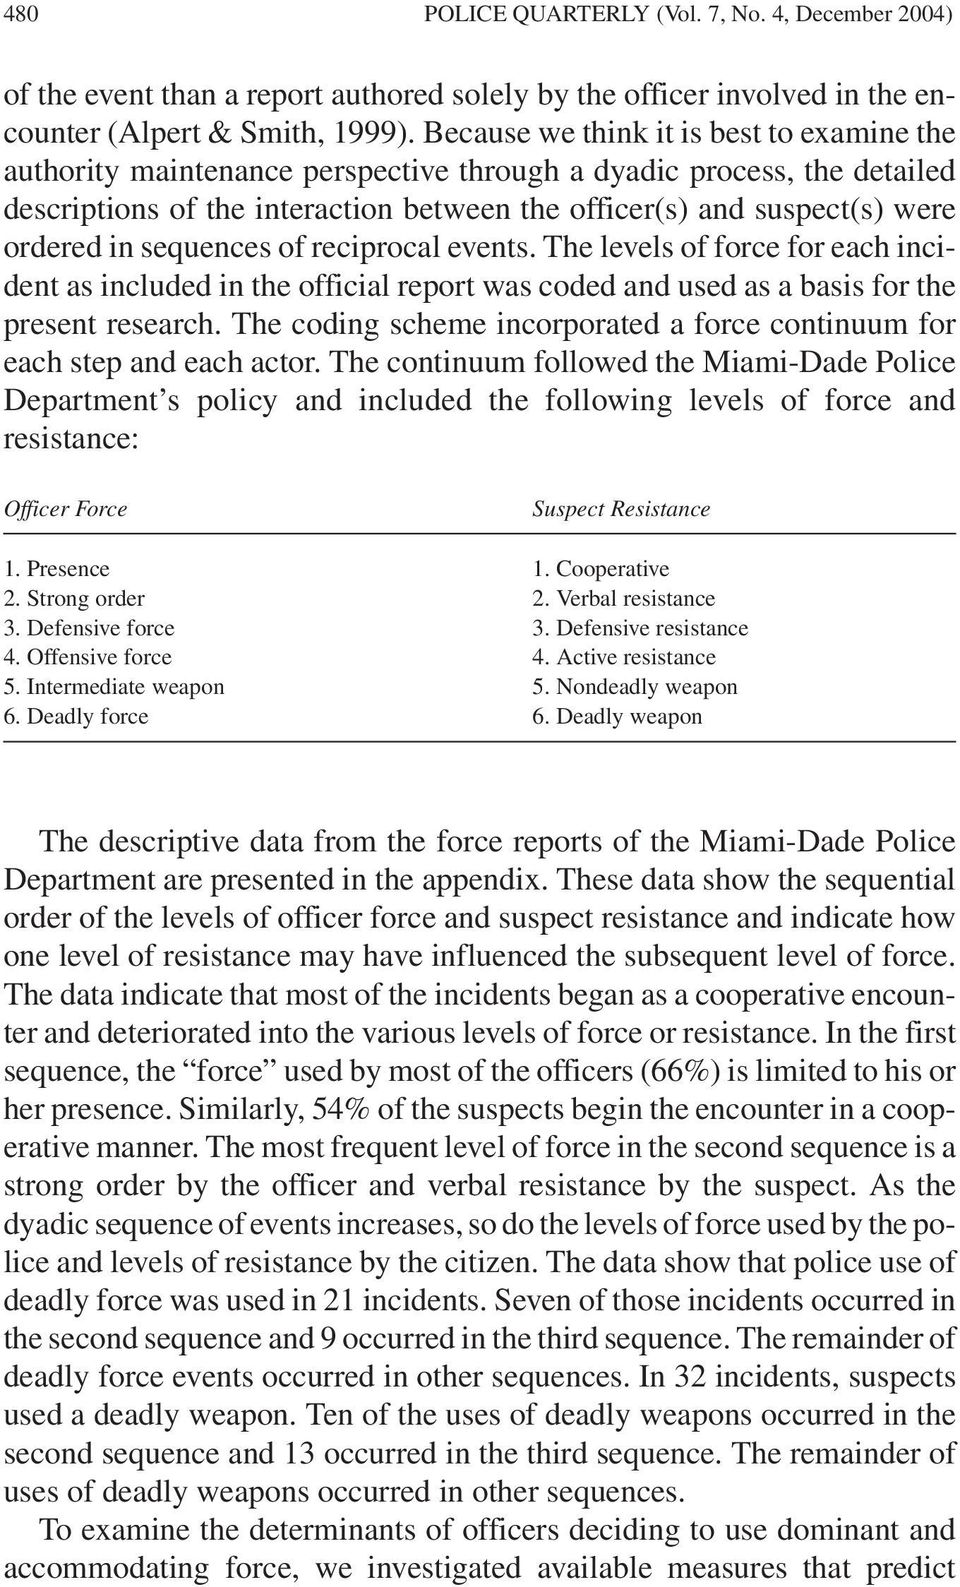 in sequences of reciprocal events. The levels of force for each incident as included in the official report was coded and used as a basis for the present research.